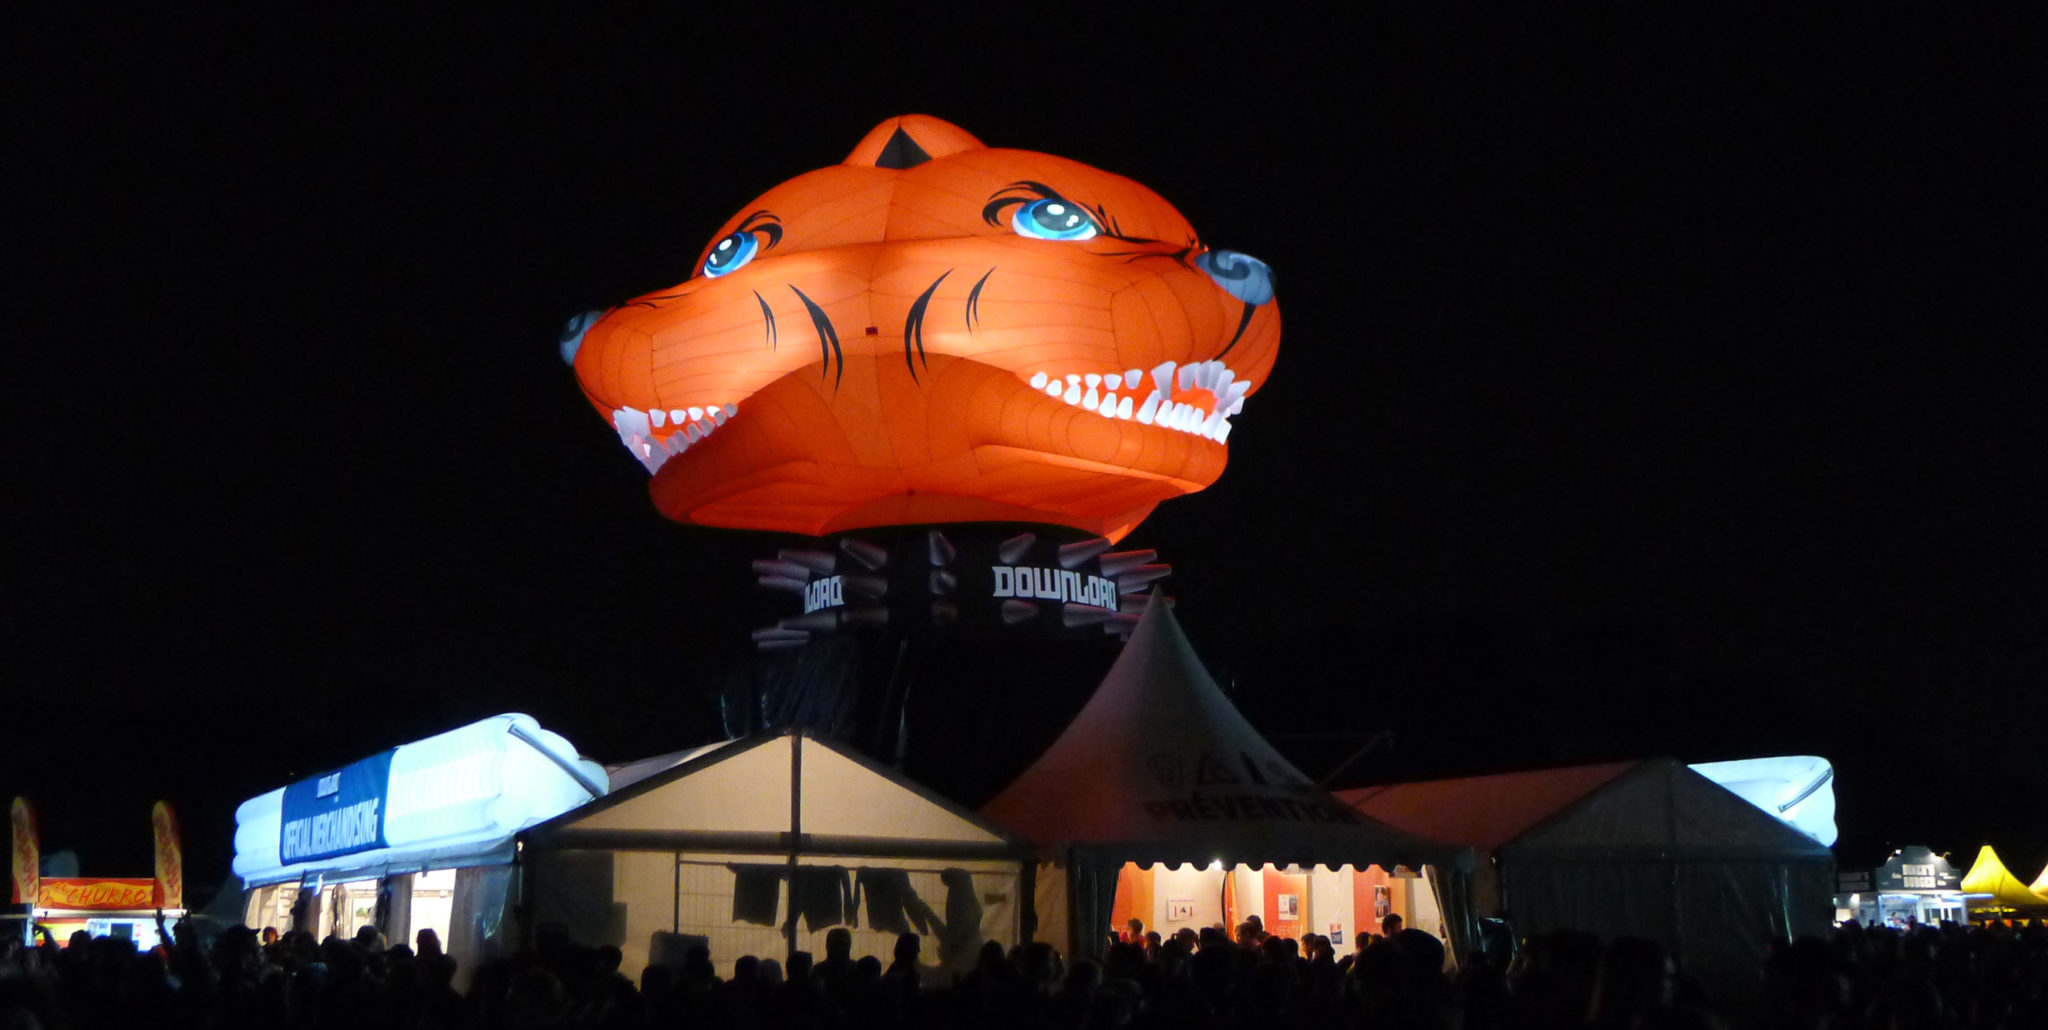 AIRSYSTEMS-AIRSTYLE-Festival-Download-Mascotte-Pitbull-gonflable-7m-4